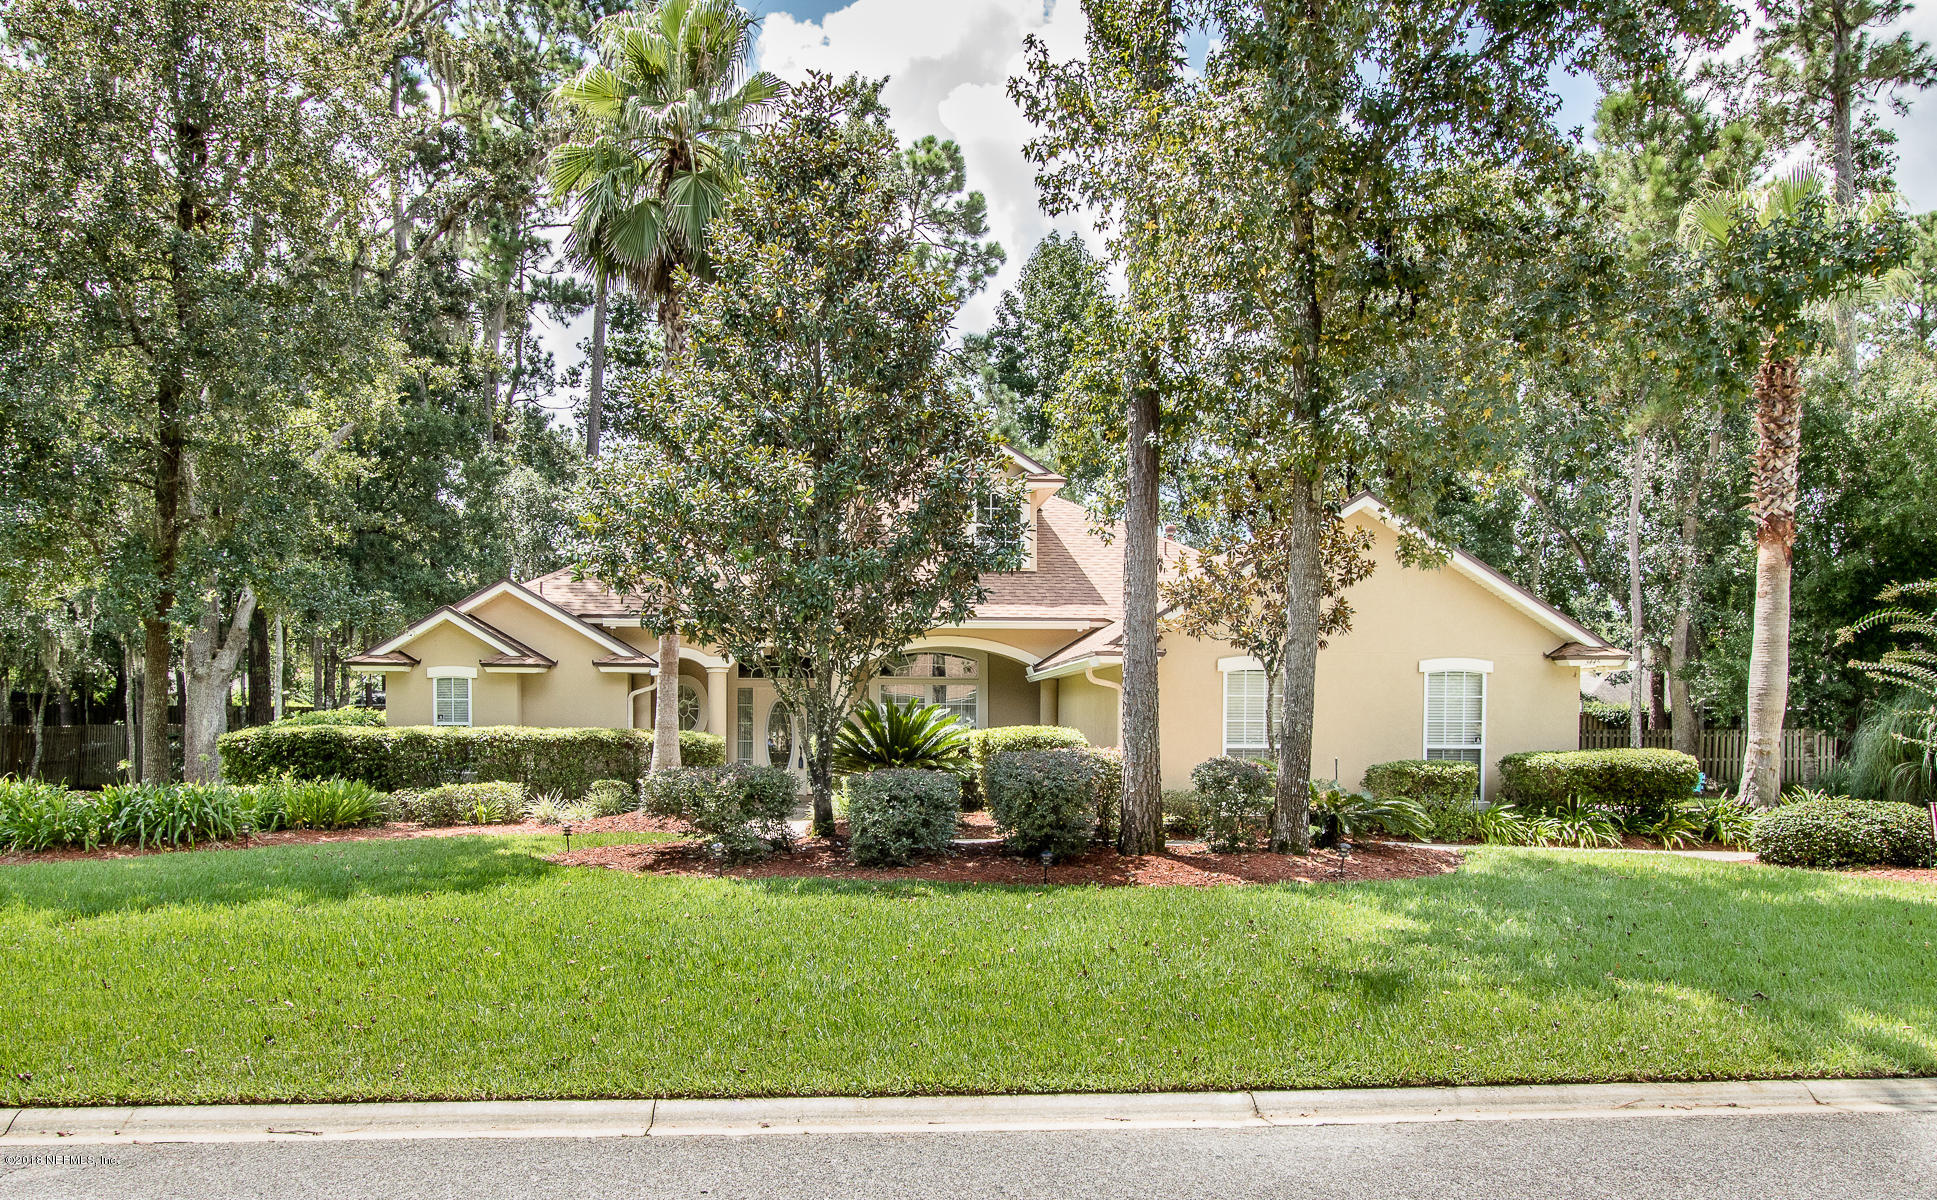 3445 MAINARD BRANCH, FLEMING ISLAND, FLORIDA 32003, 4 Bedrooms Bedrooms, ,2 BathroomsBathrooms,Residential - single family,For sale,MAINARD BRANCH,952678